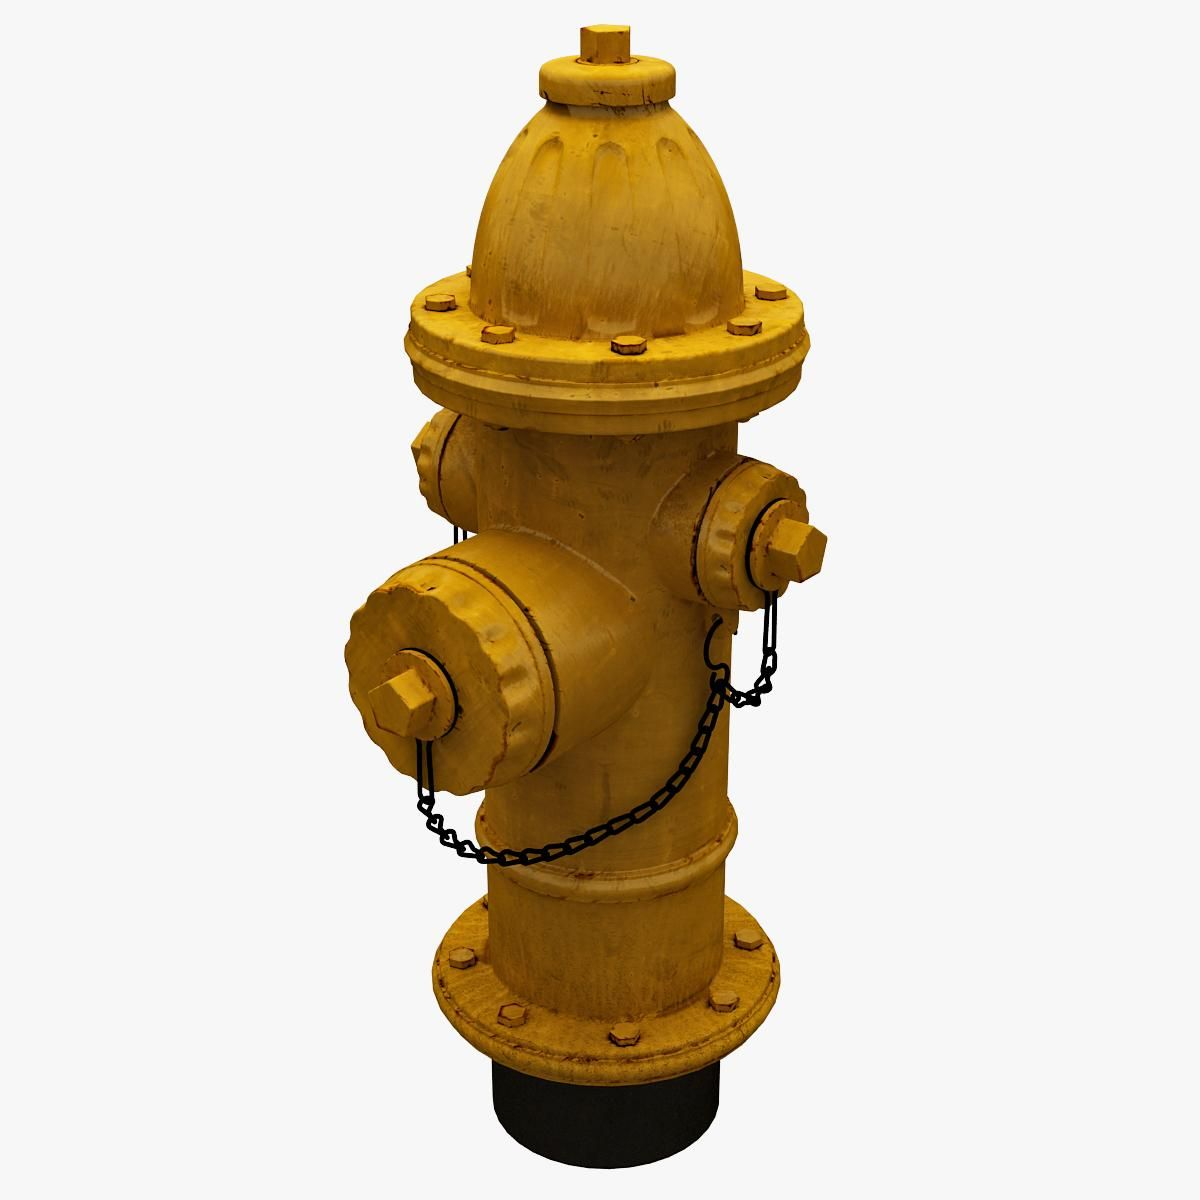 Fire Hydrant 4 3d Model Ad Fire Hydrant Model Hydrant Fire Hydrant Fire